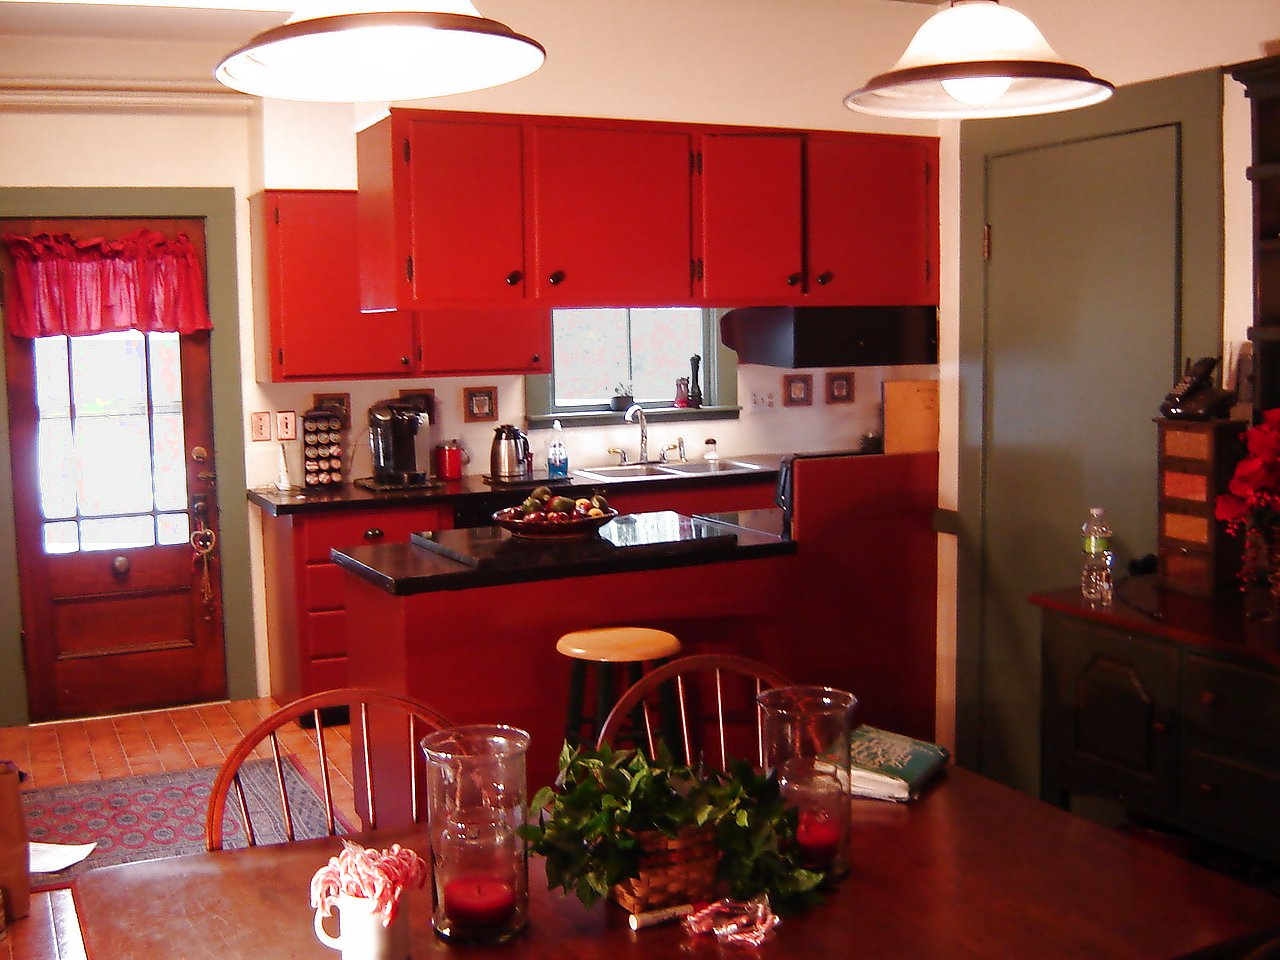 Adorable Red Country Kitchen Design With Storage And Red Dining Table With  Wooden Chairs And Pendants